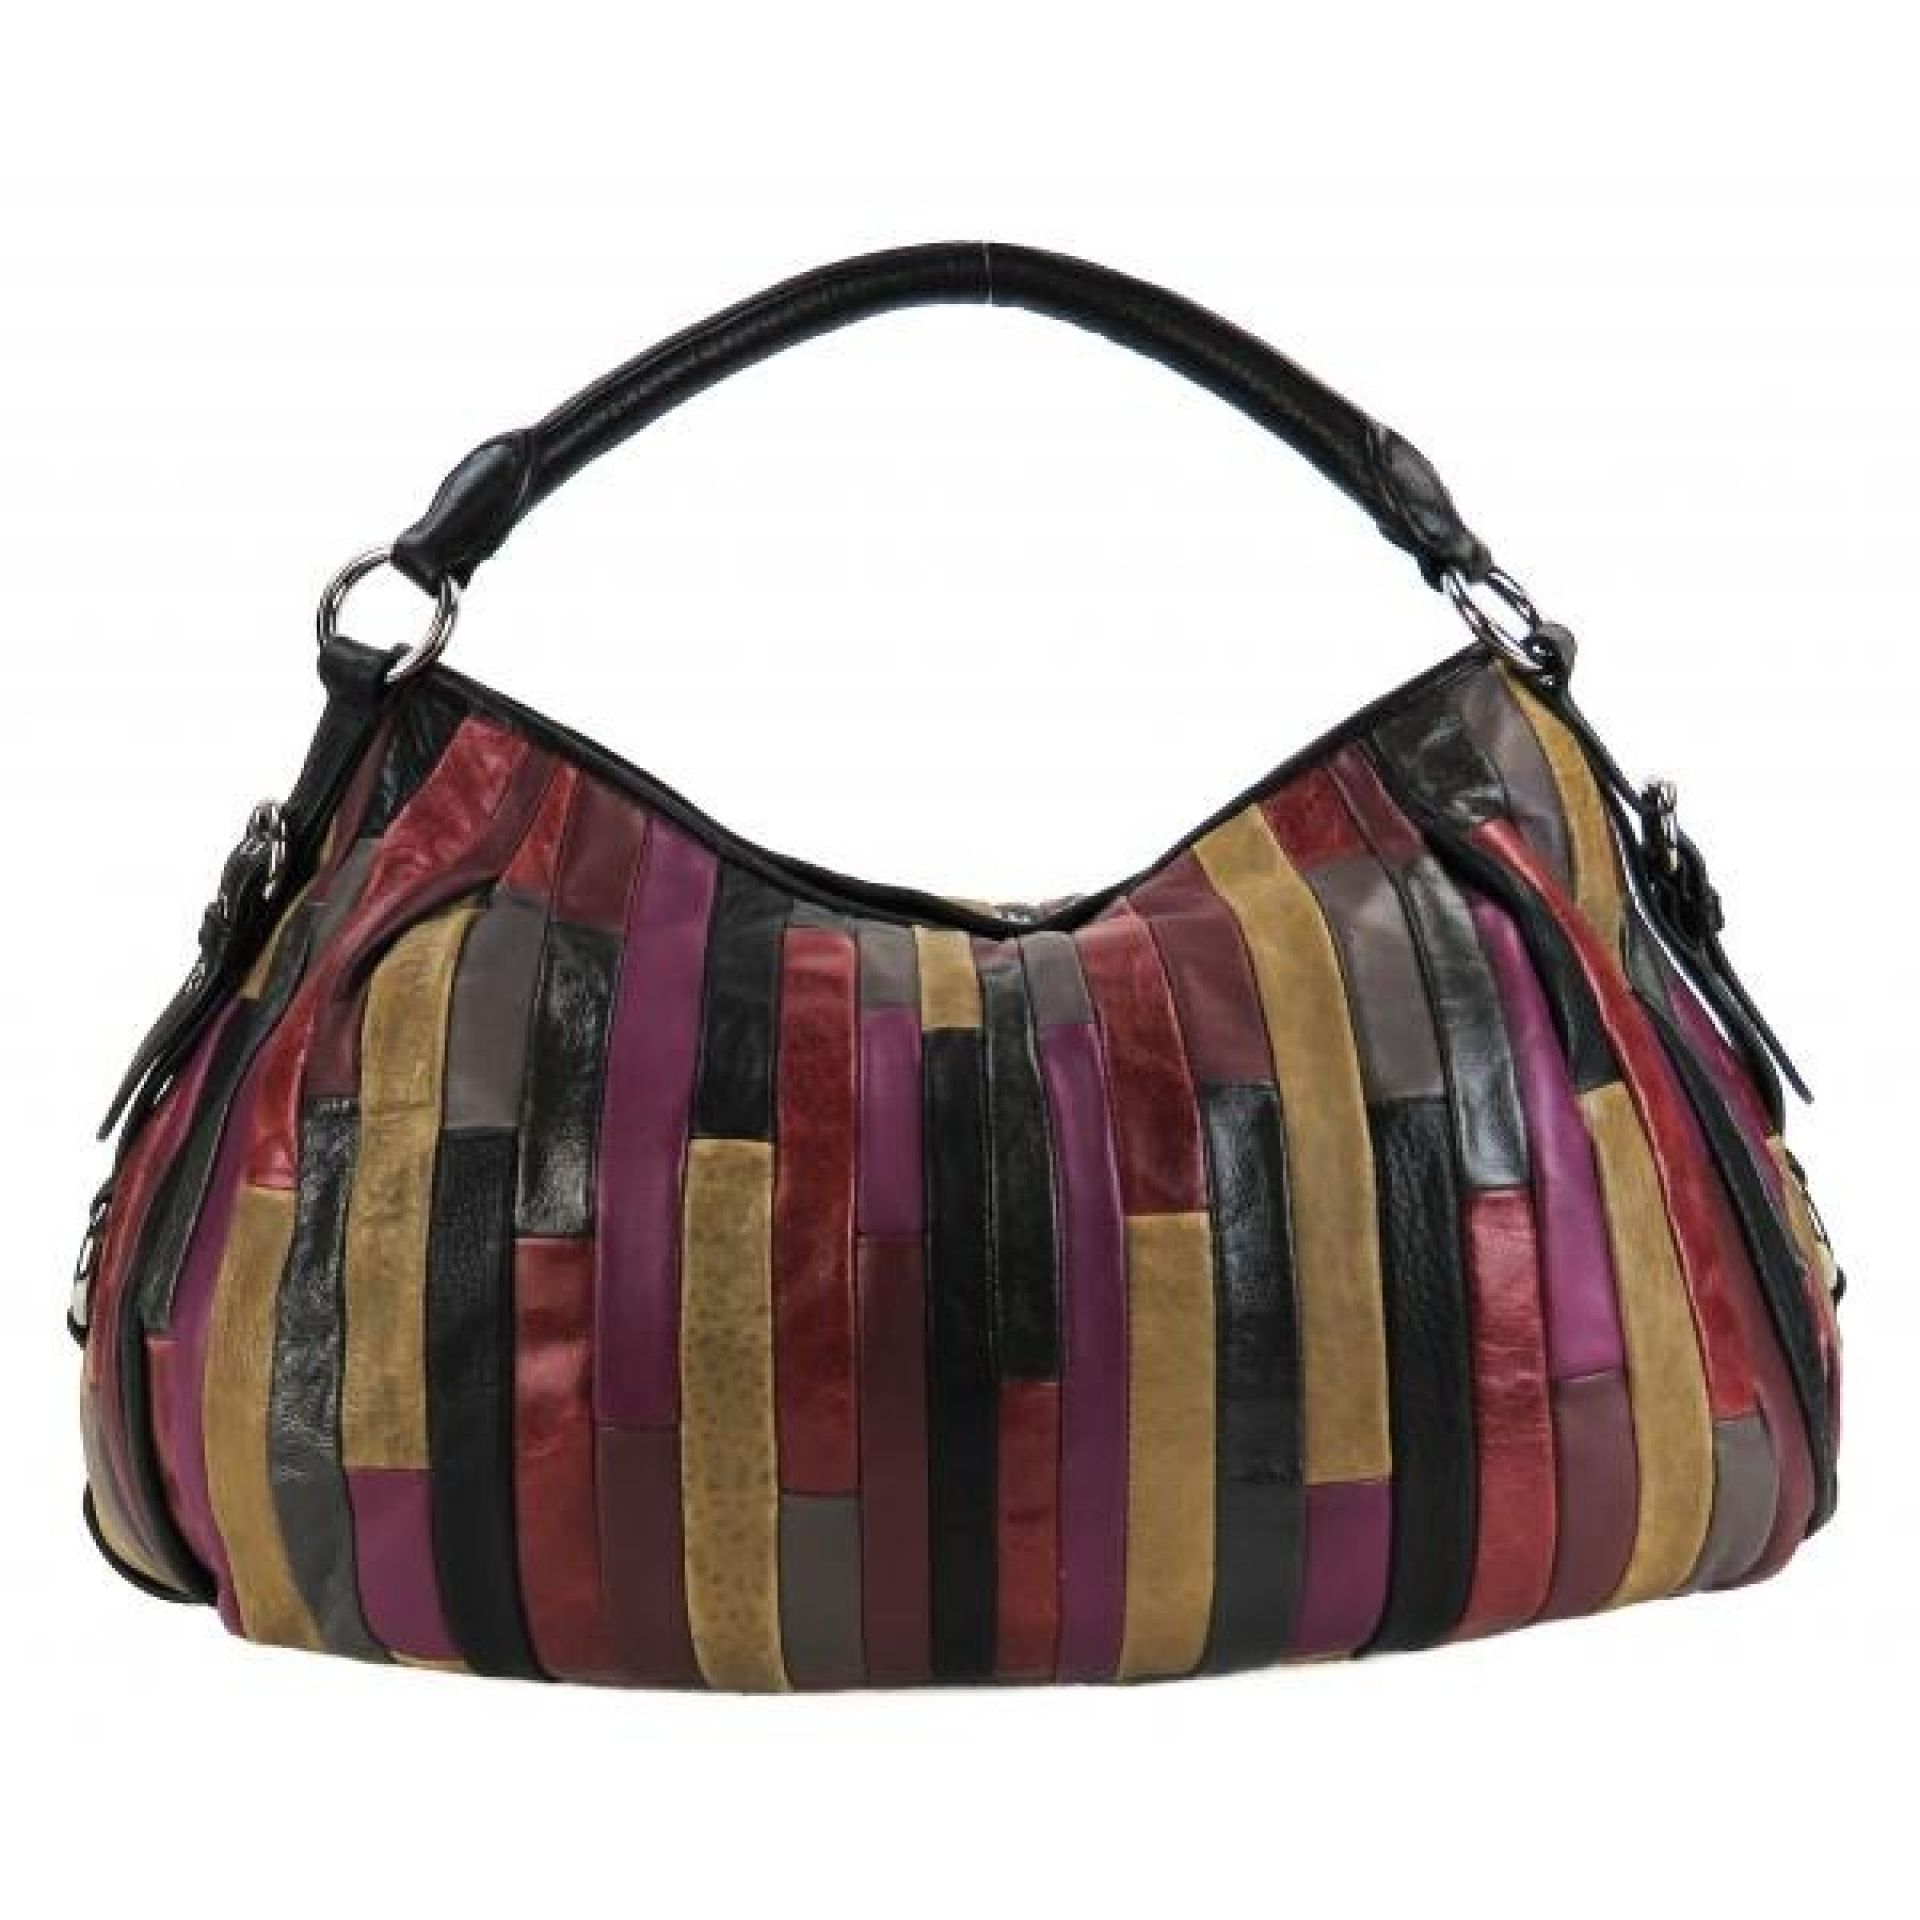 Miu Miu Multicolor Nappa Leather Amarena Patchwork Hobo Bag